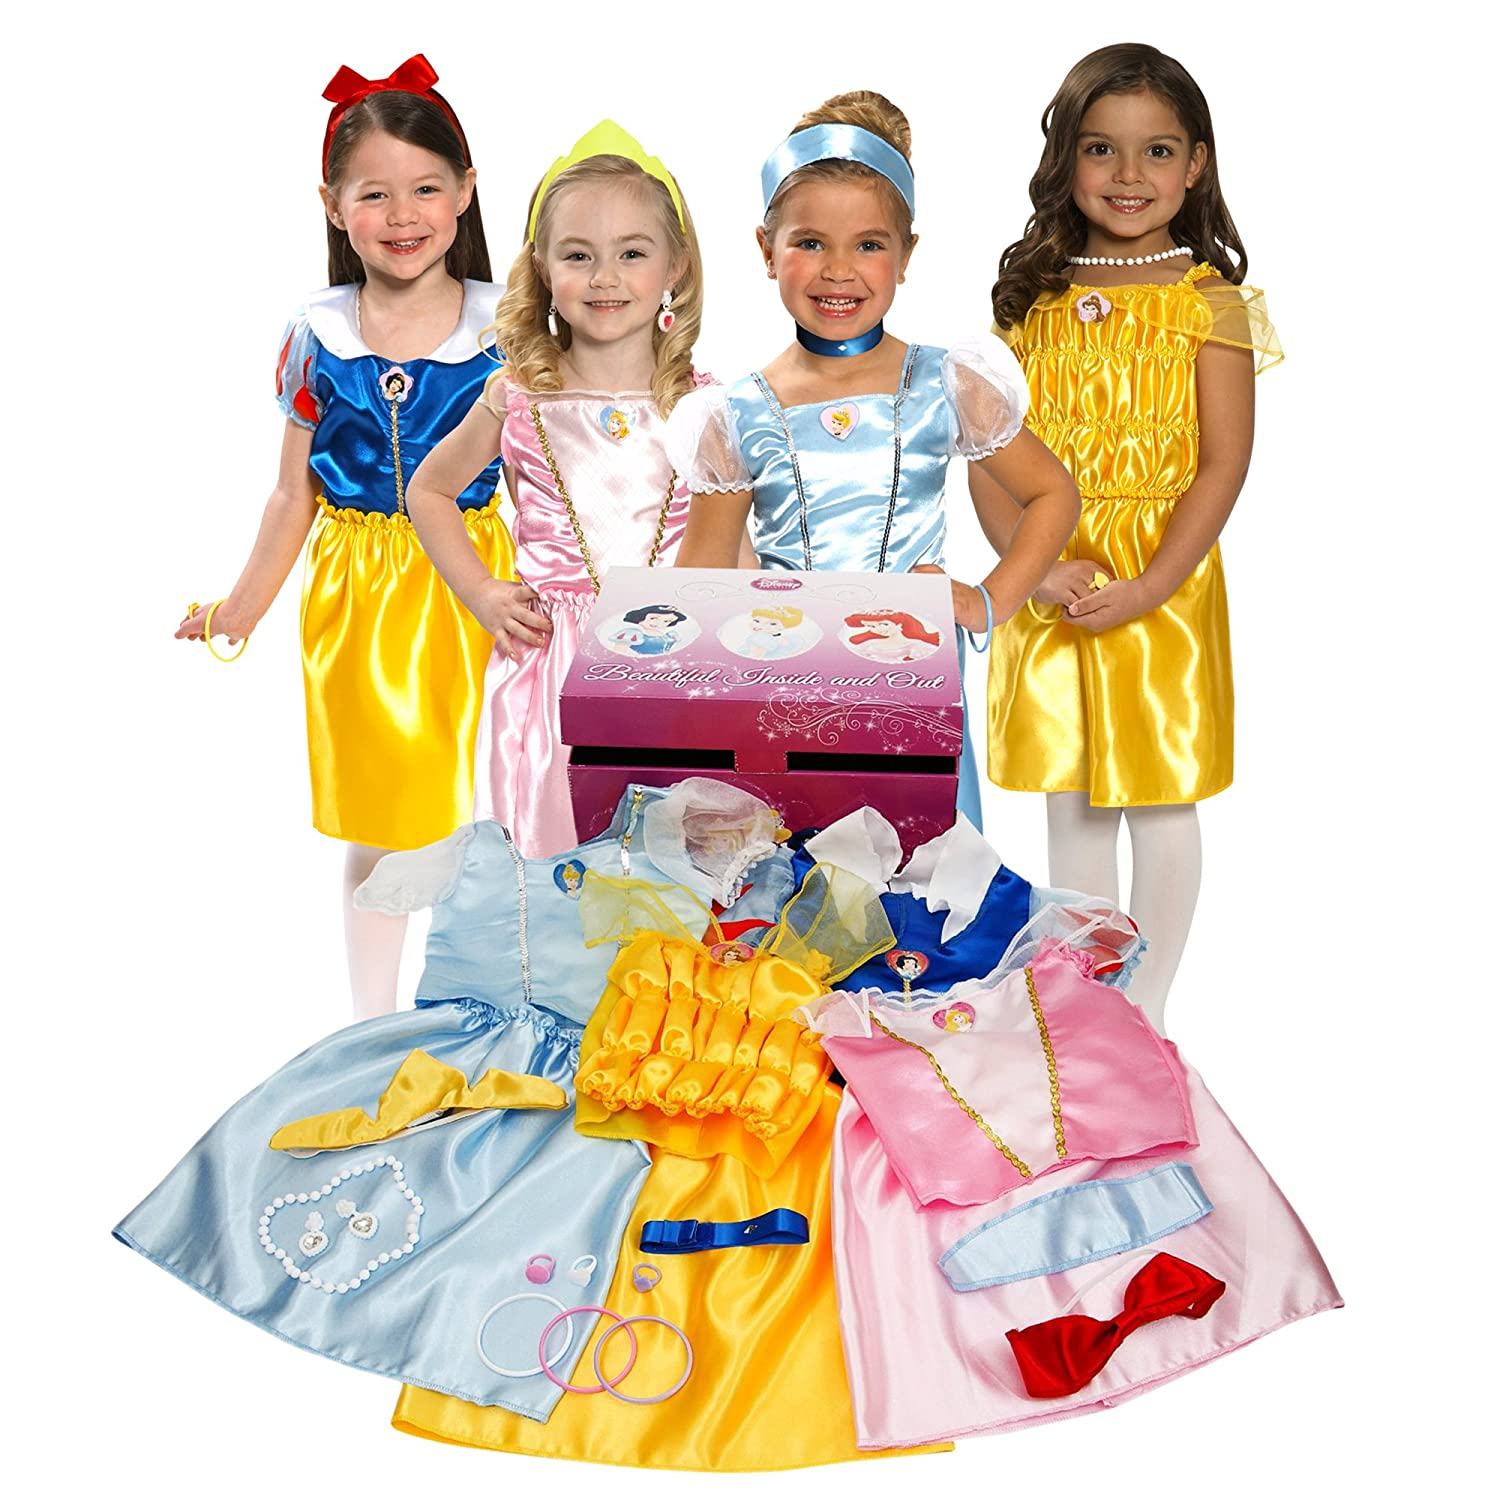 Amazon.com: Dress Up &amp Pretend Play: Toys &amp Games: Costumes ...